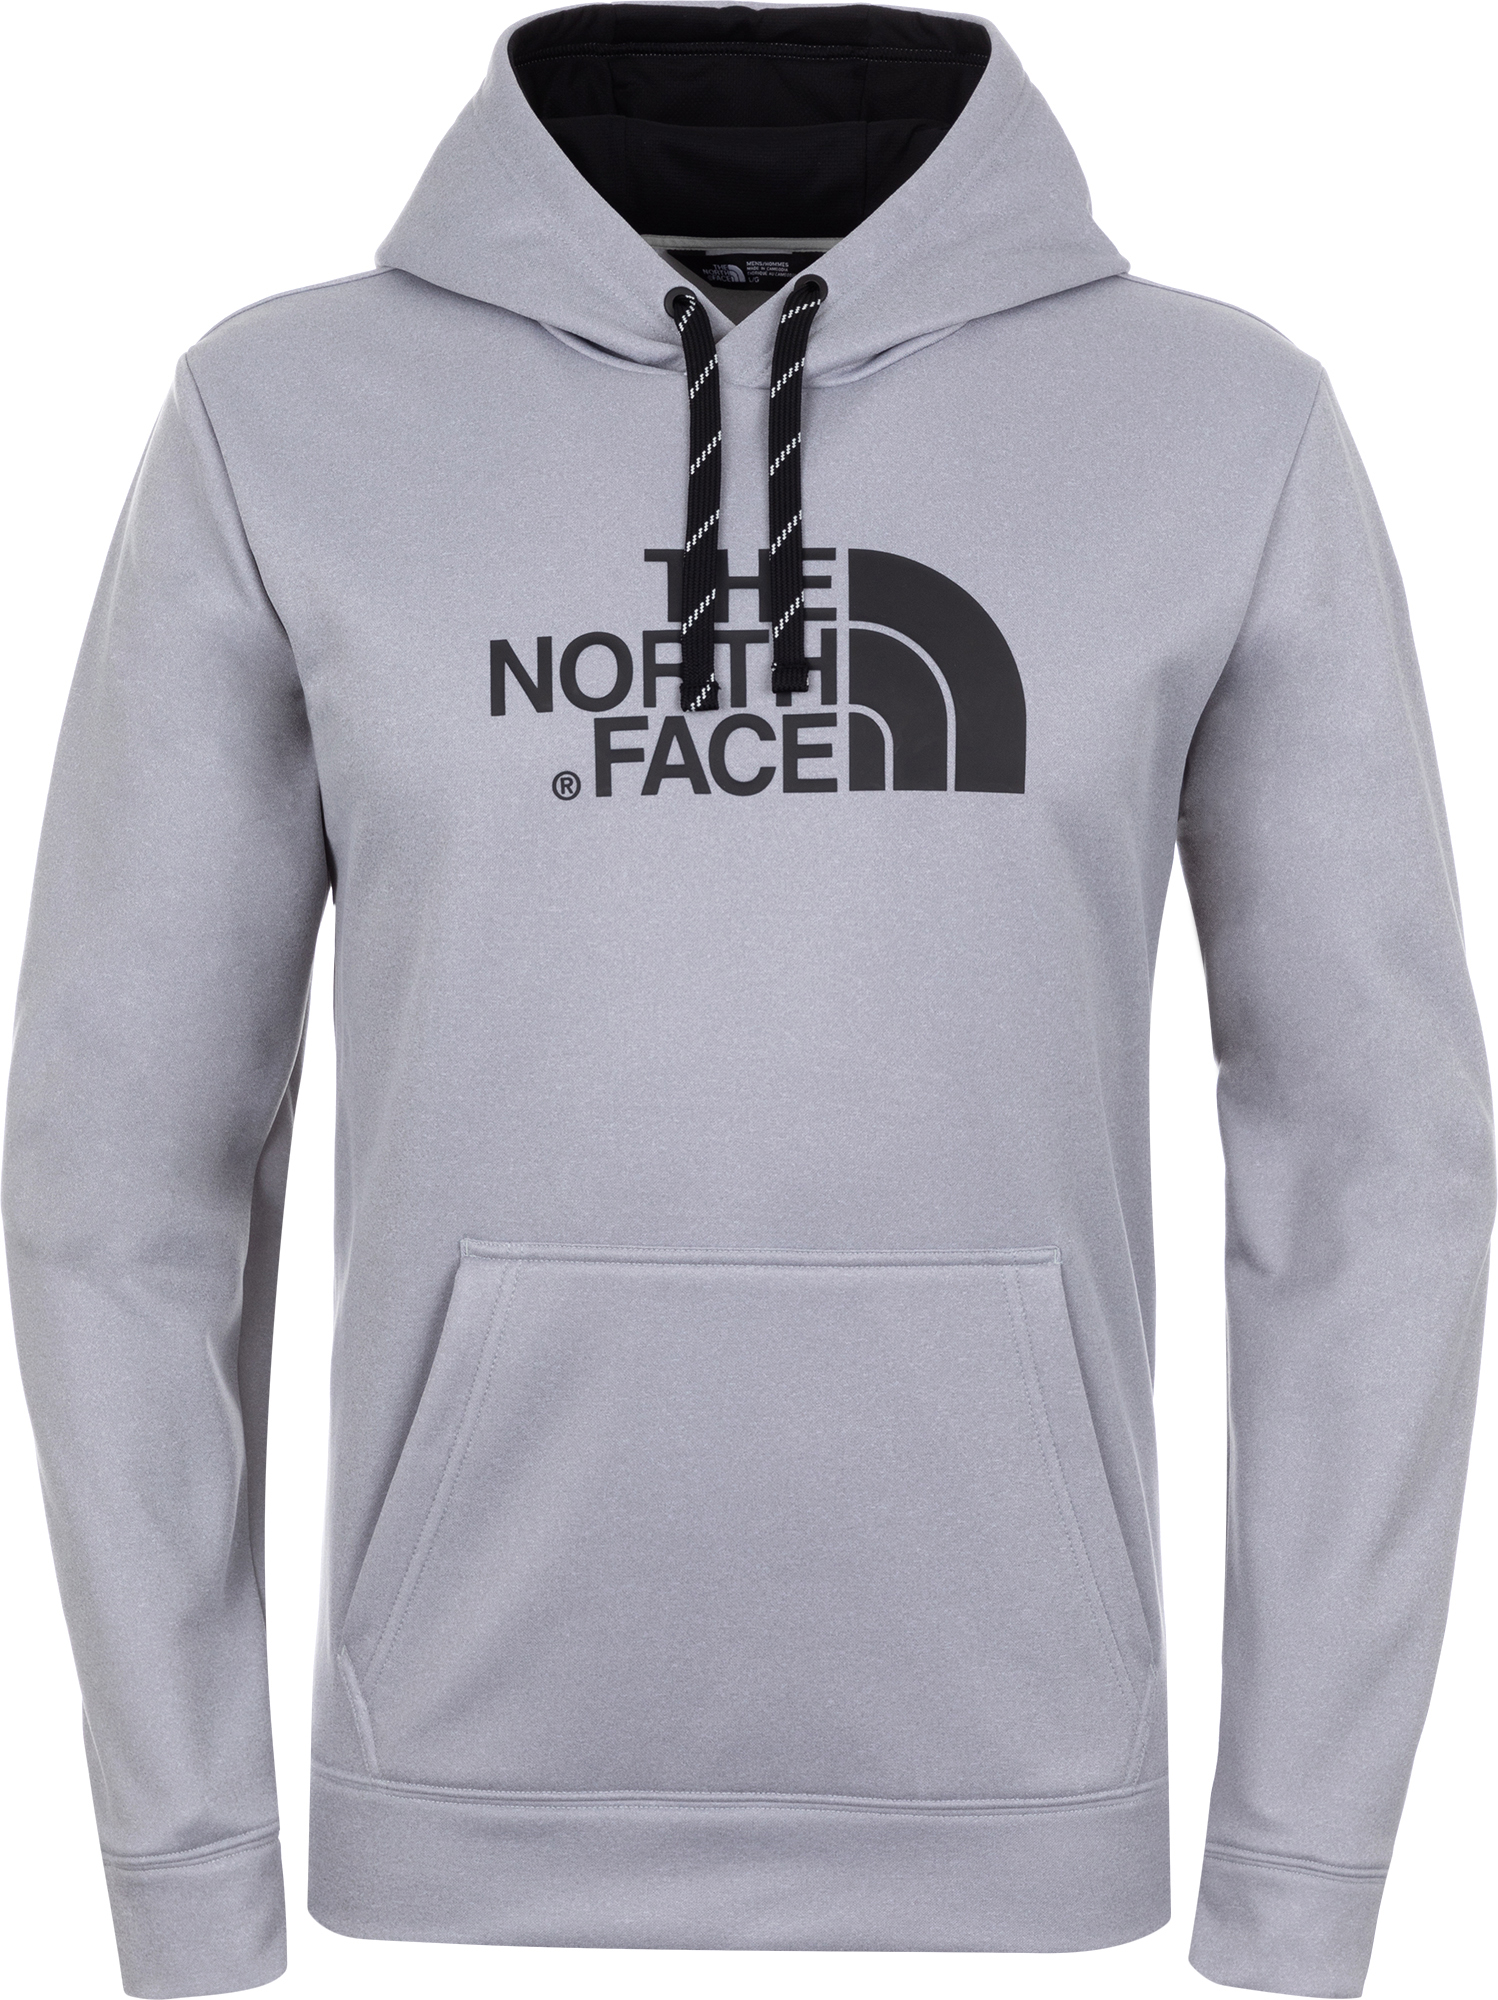 The North Face Худи мужская The North Face Surgent, размер 50 худи print bar 50 shades